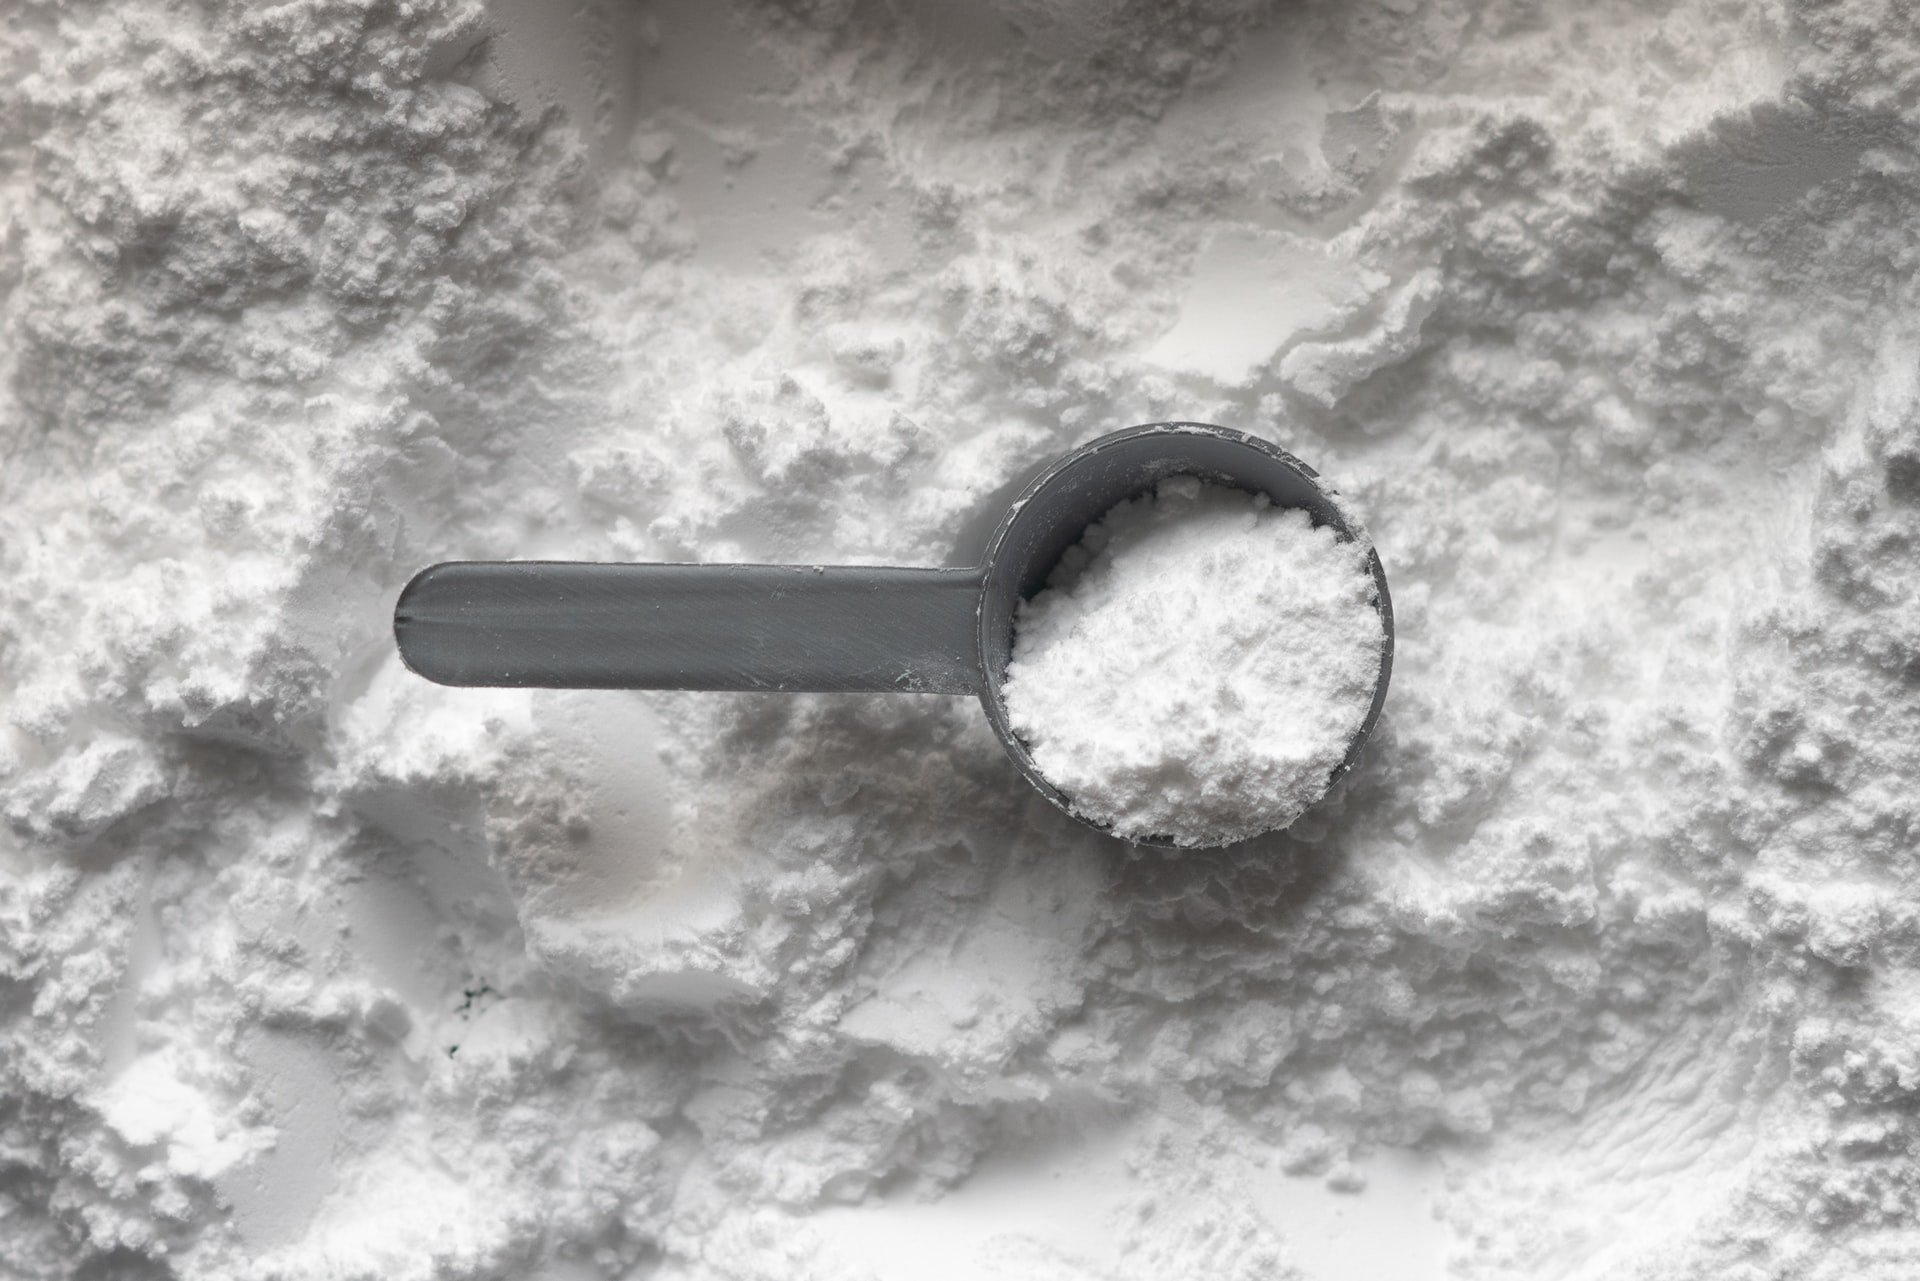 Dr Kelly C. Heim: All You Need To Know About Creatine Supplements